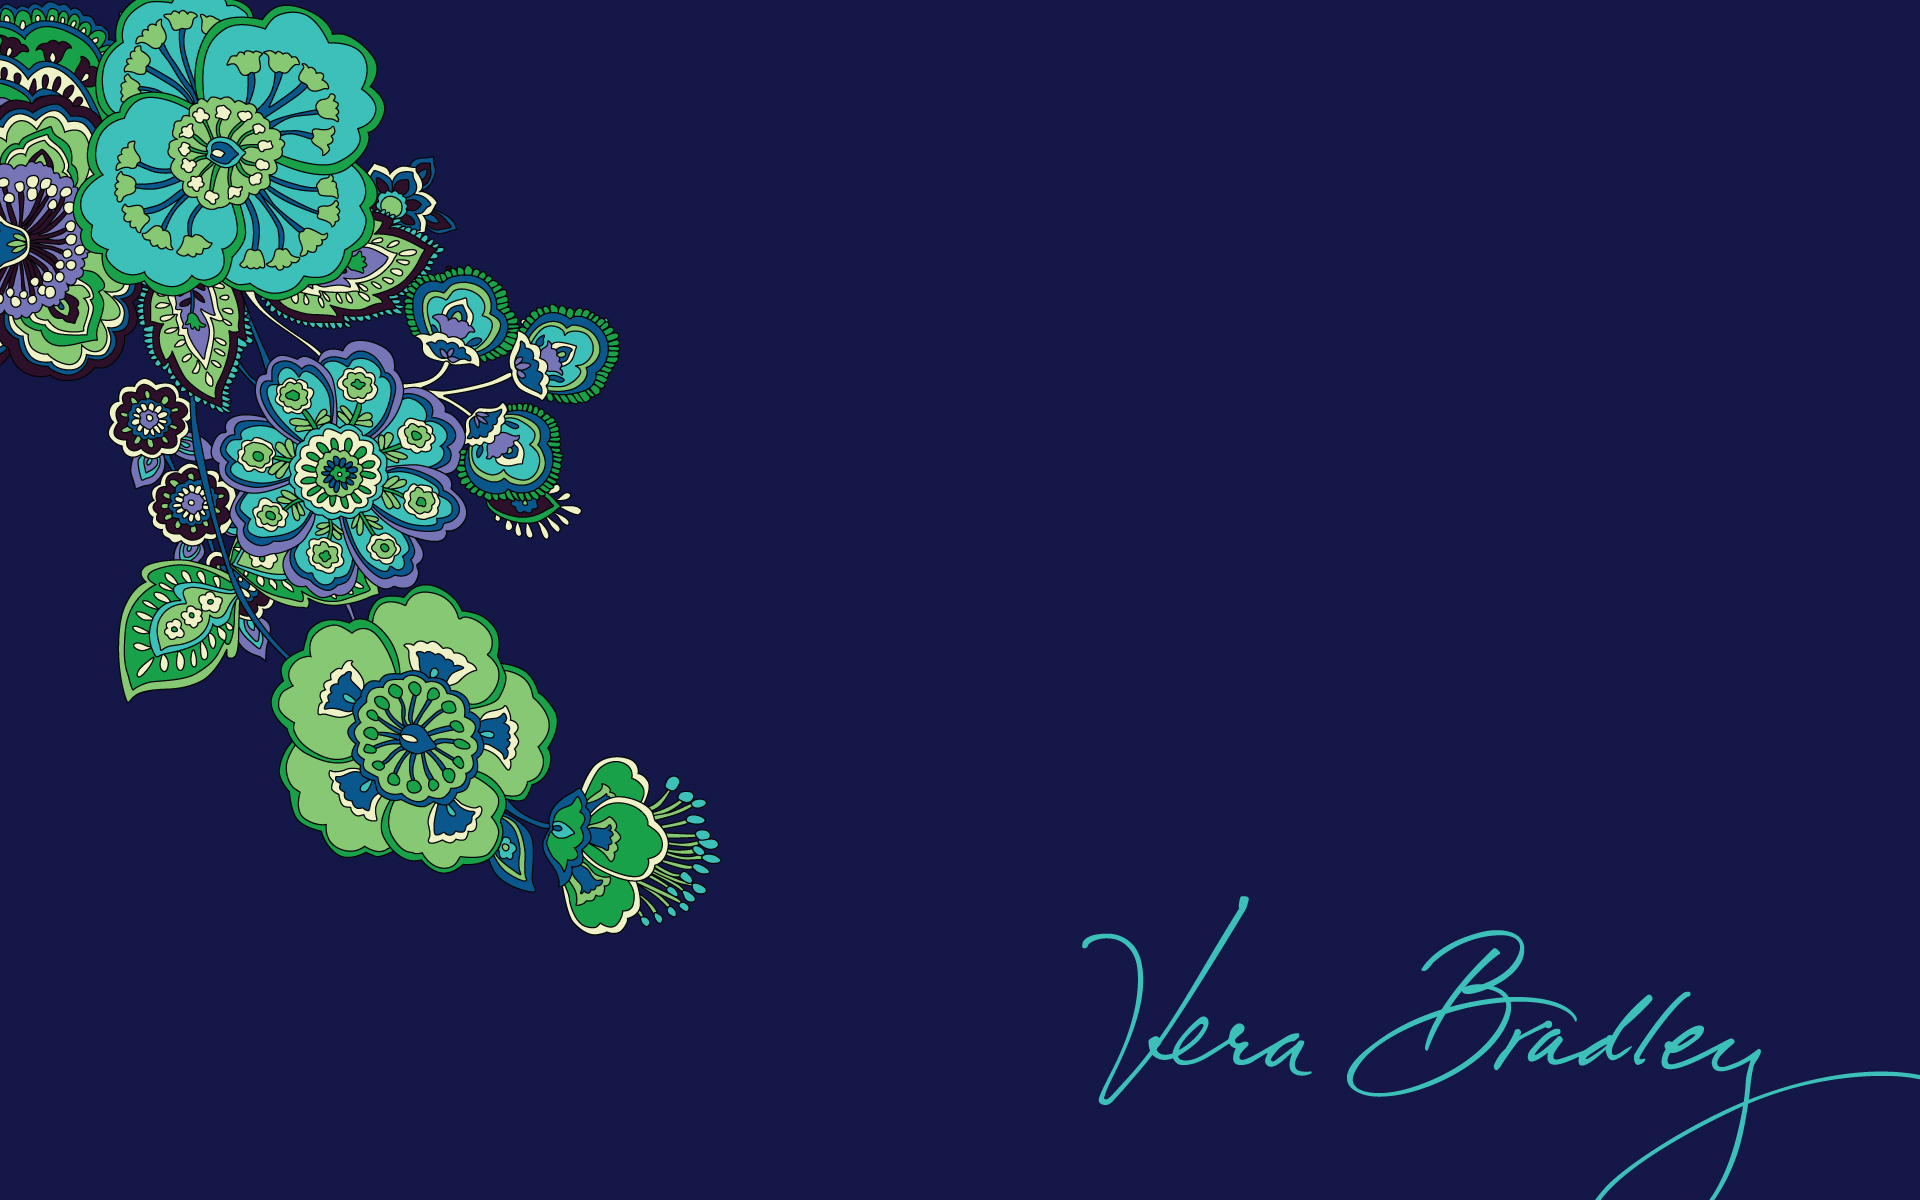 Vb Wallpapers Vera Bradley Wallpaper 35126647 Fanpop